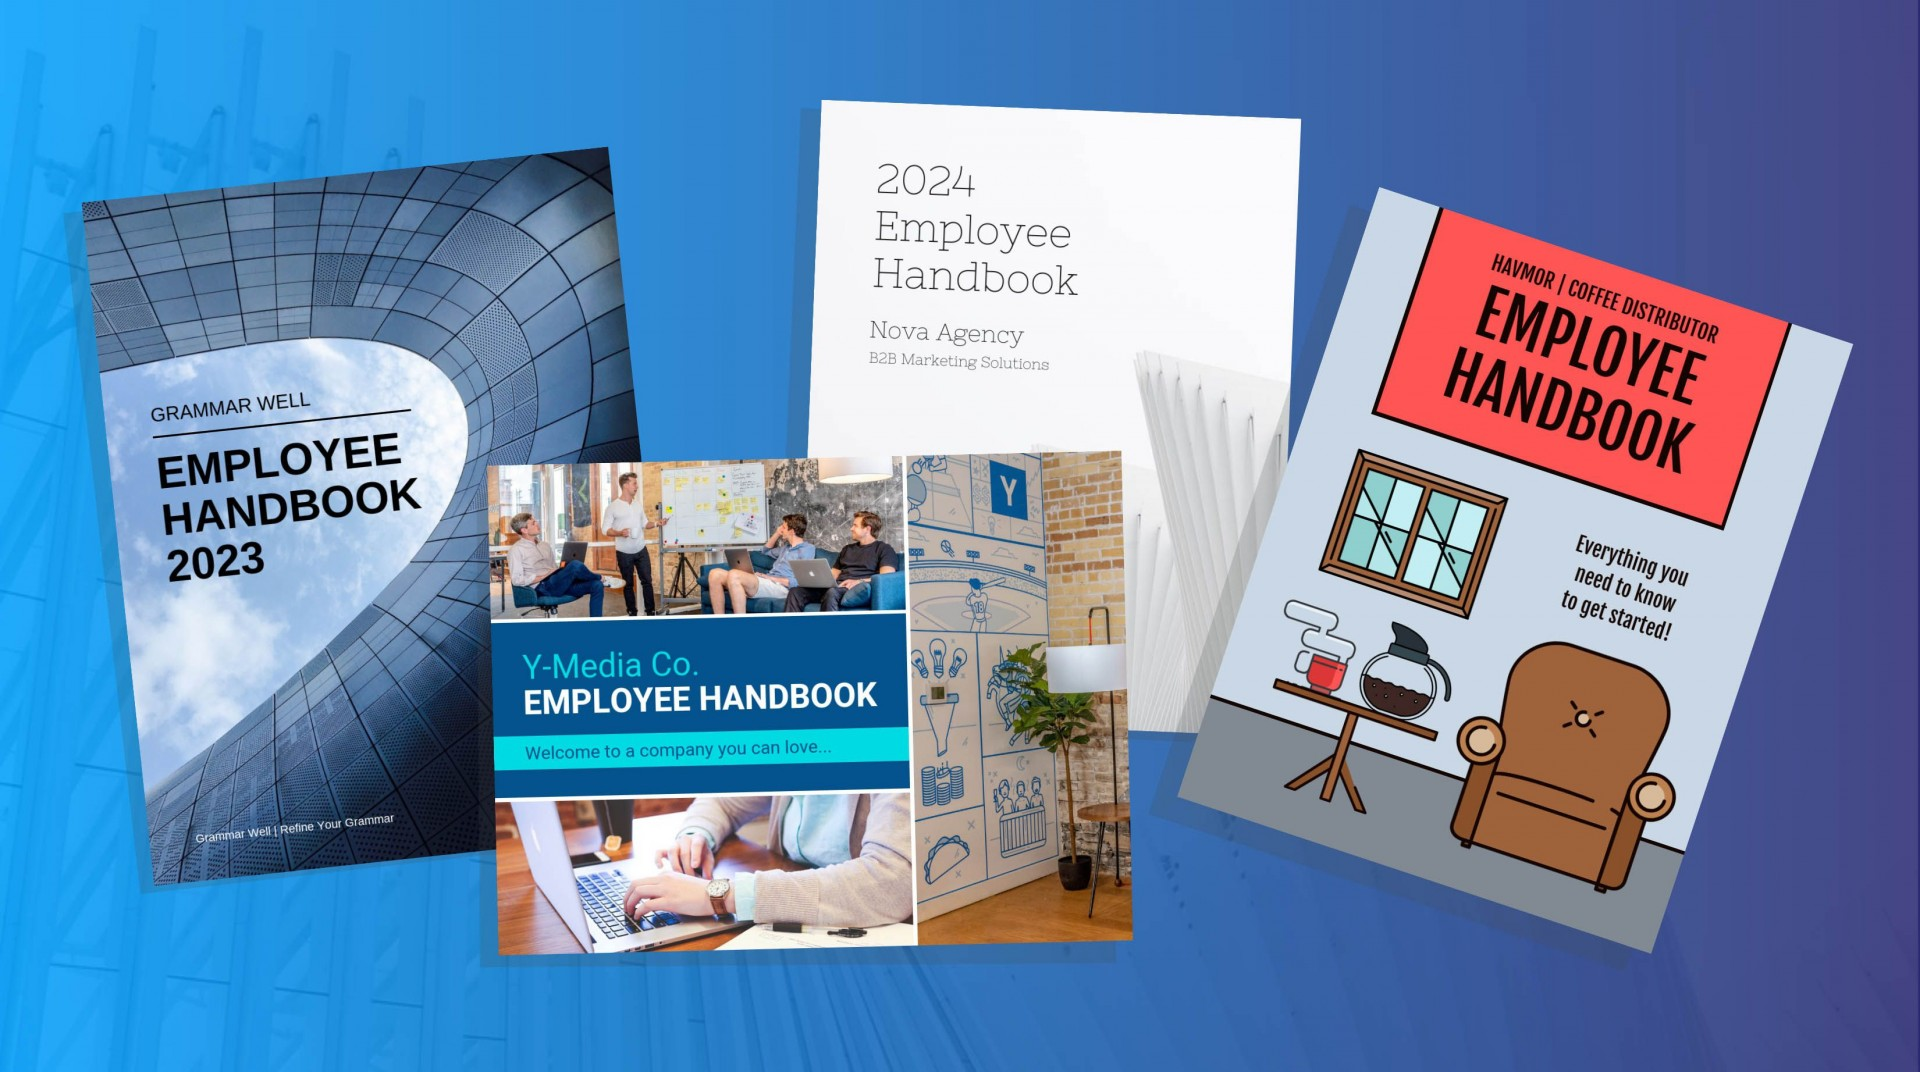 005 Phenomenal Free Employee Handbook Template Inspiration  Templates Sample Canada Philippine In Singapore1920